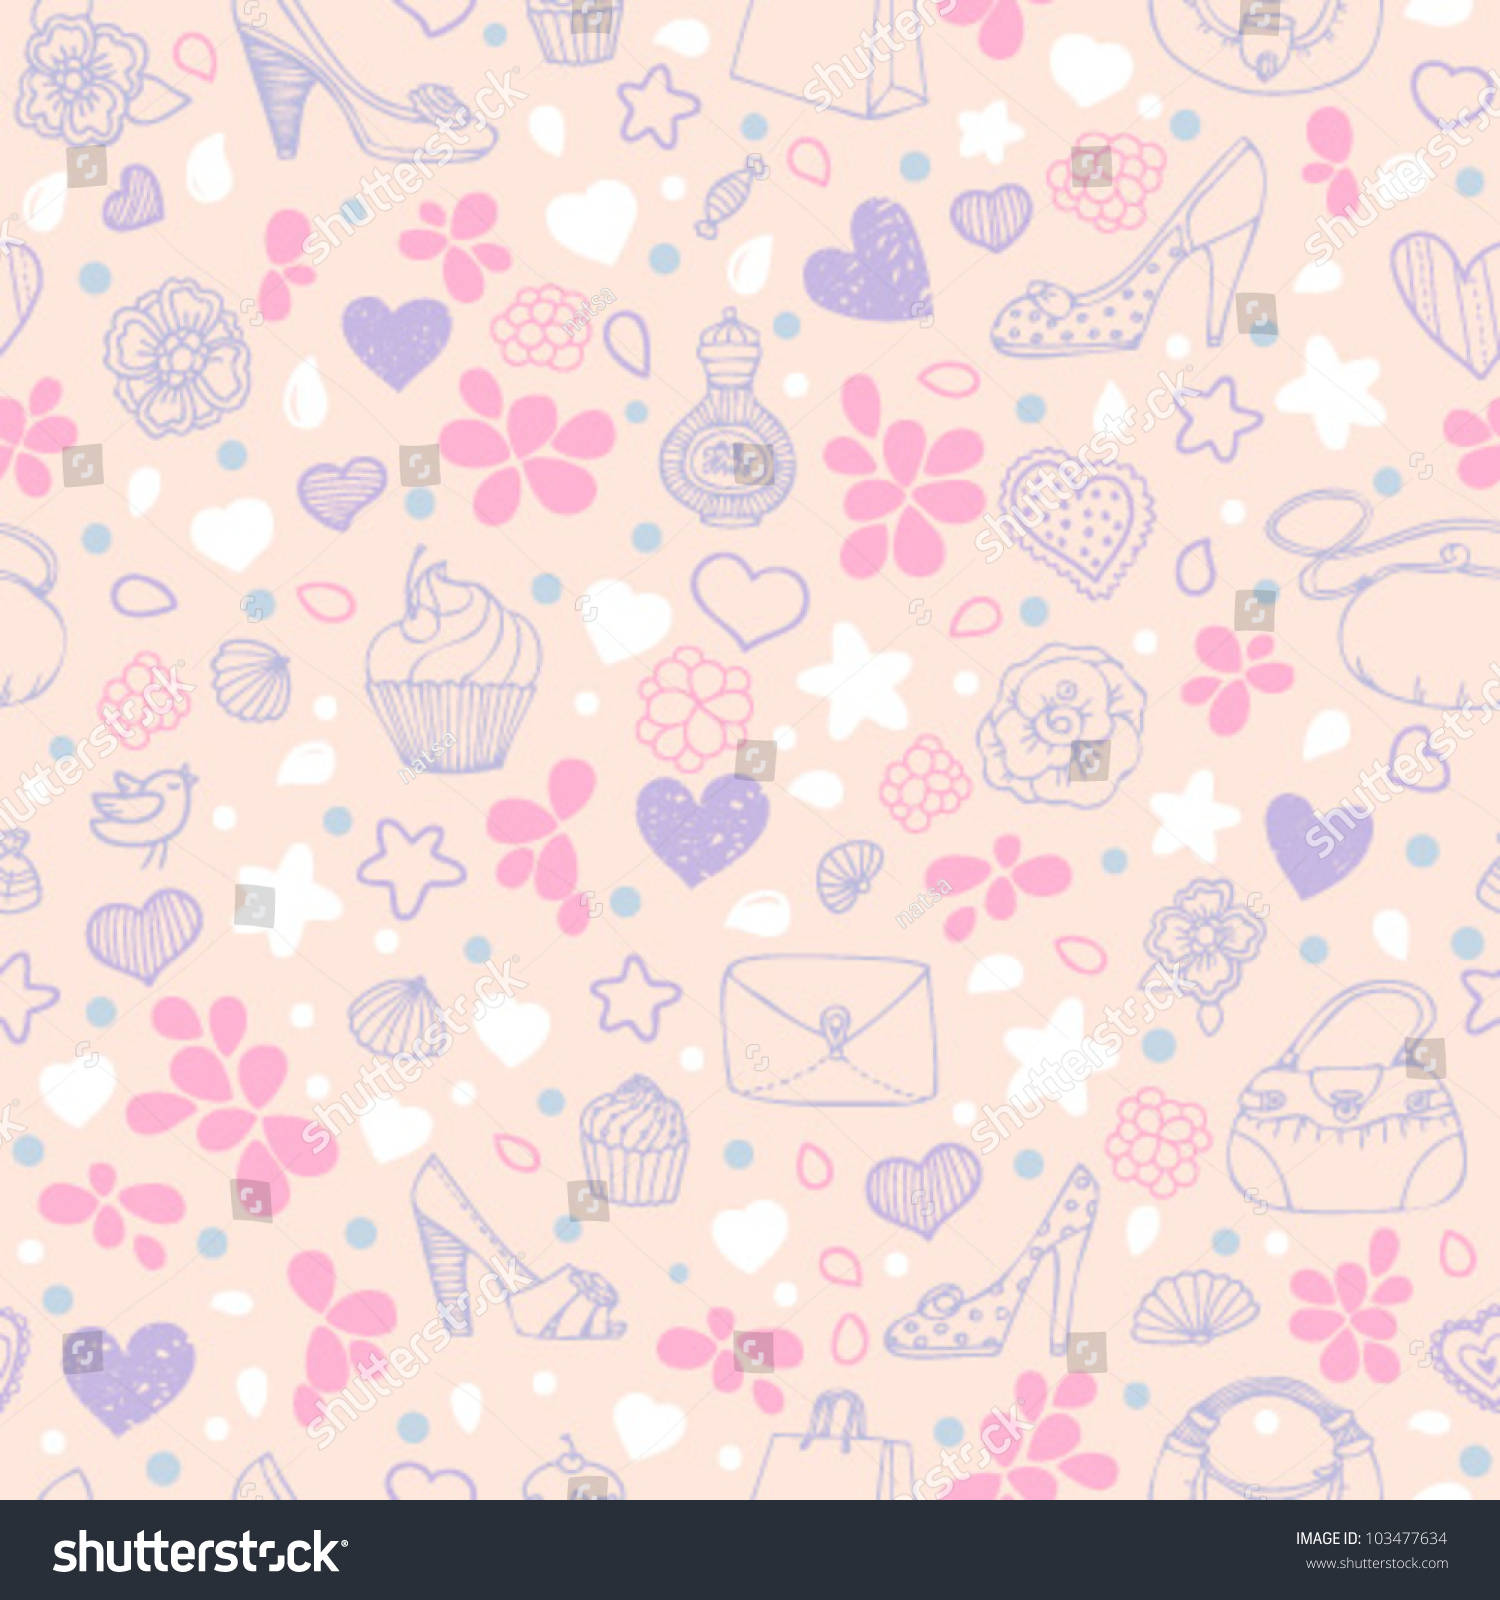 Love Girly Seamless Pattern Pink Violet Stock Vector 103477634 ...